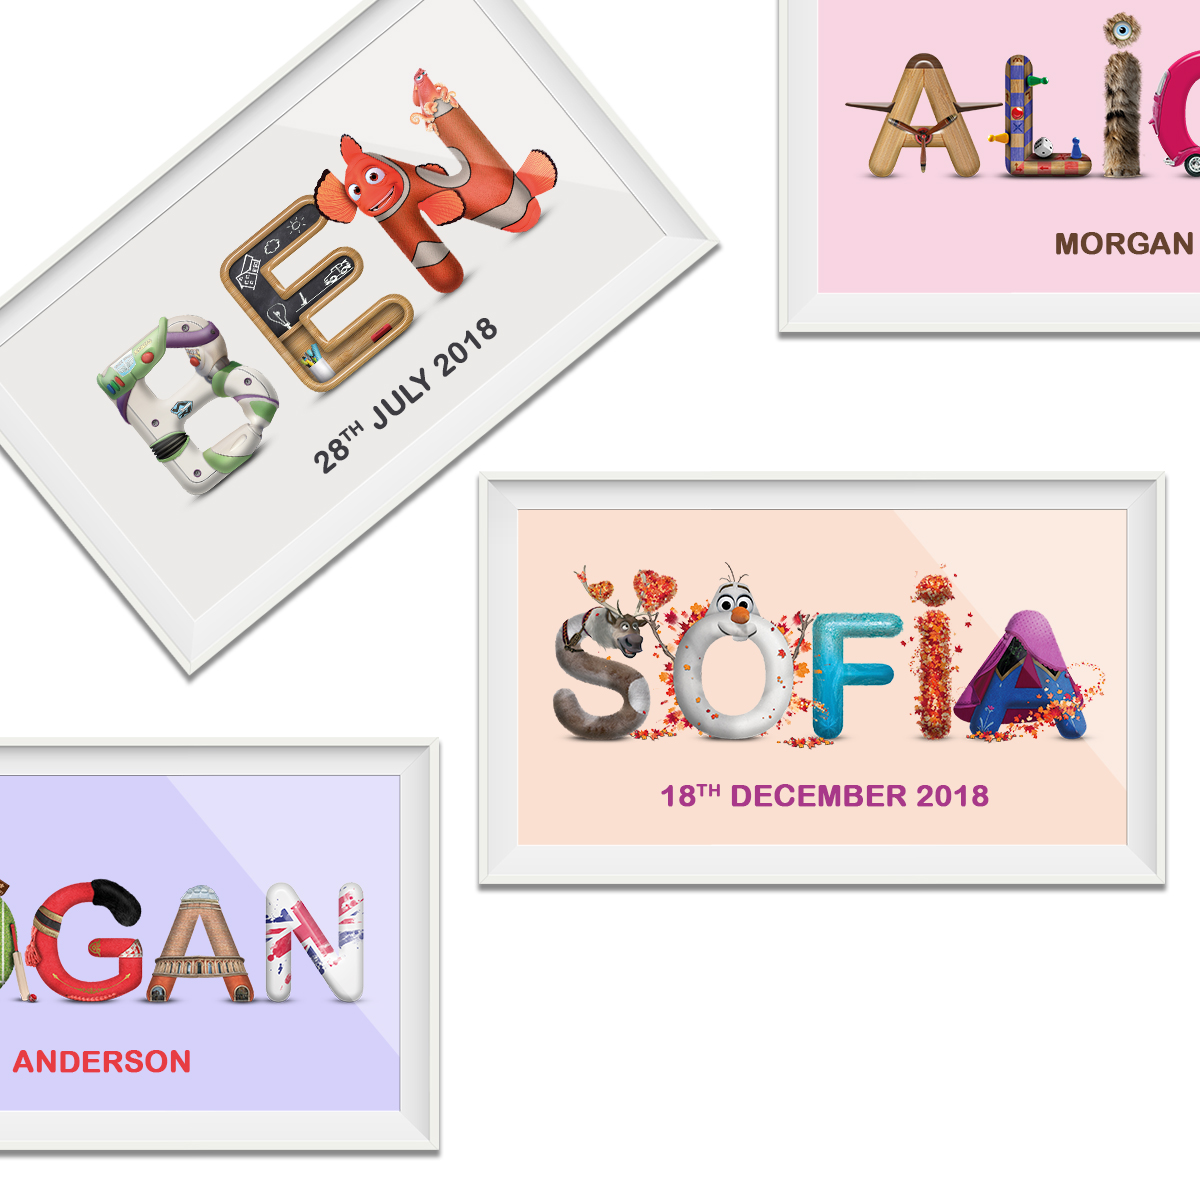 Child's Personalised Name from £5 ! monalphabet.co.uk/shop/personali…